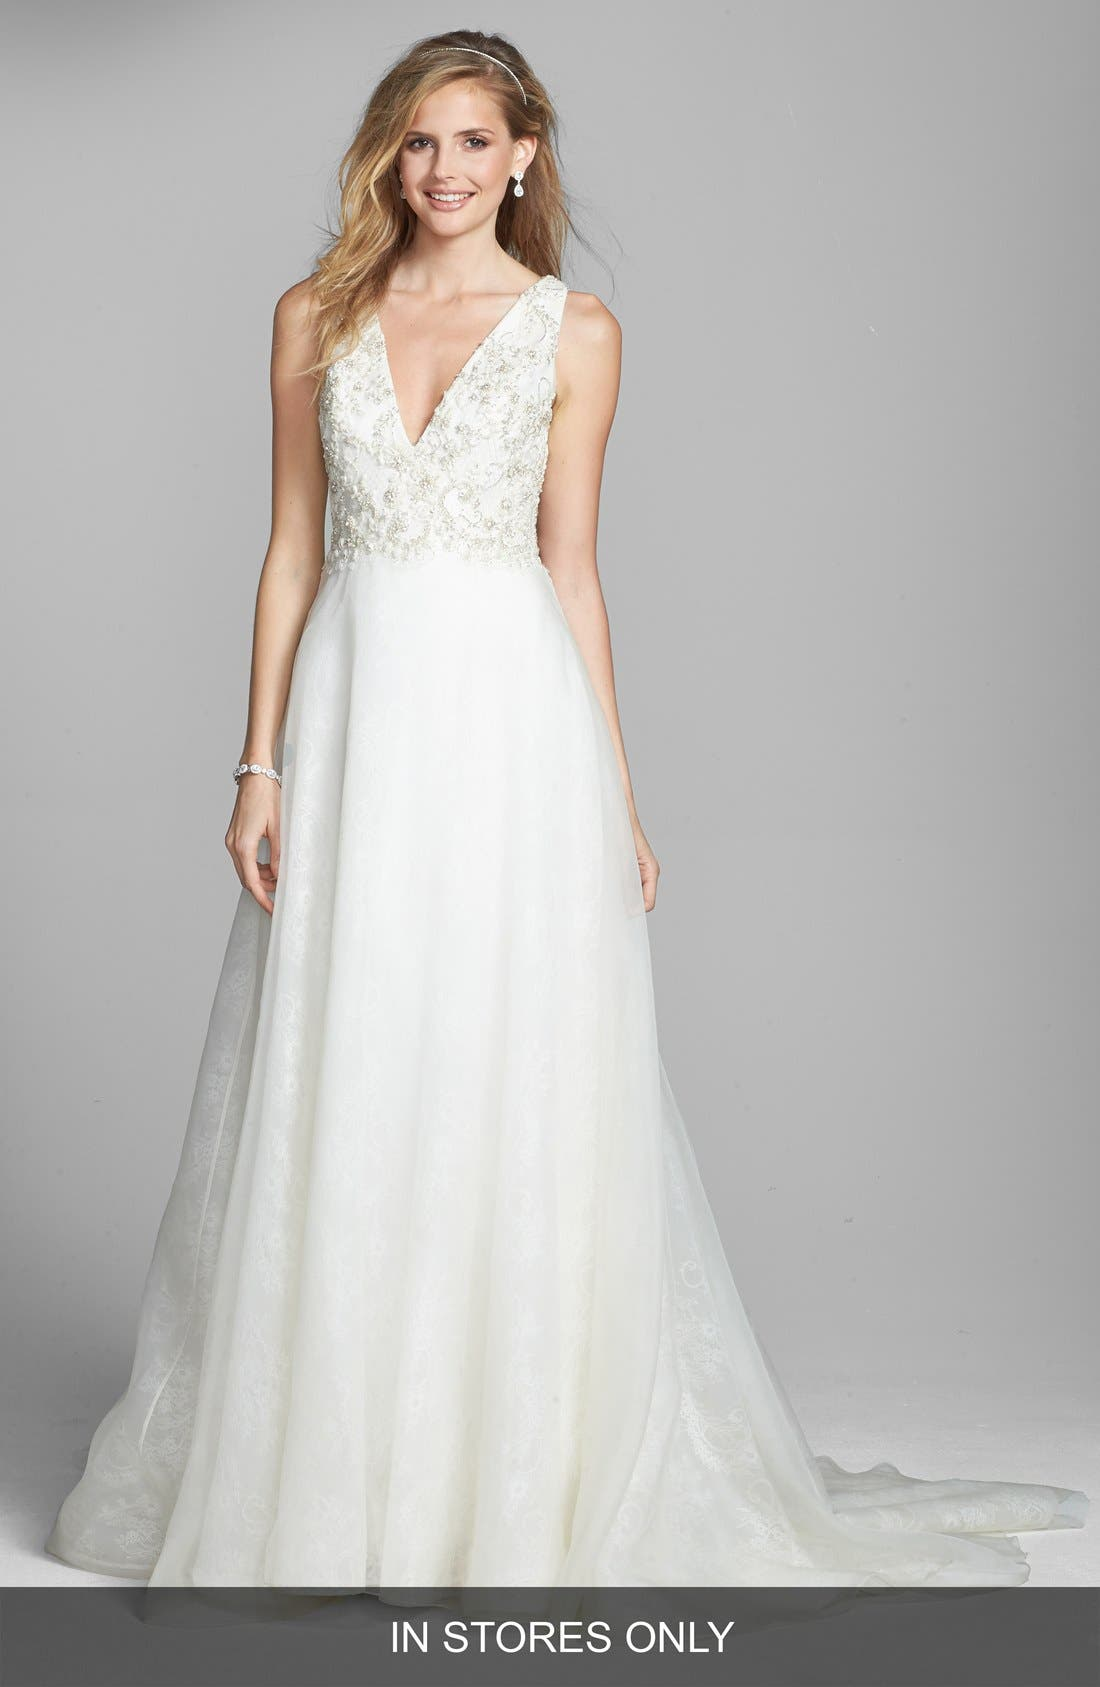 Main Image - Badgley Mischka Bridal 'Lana' Embellished Silk Organza Dress (In Stores Only)